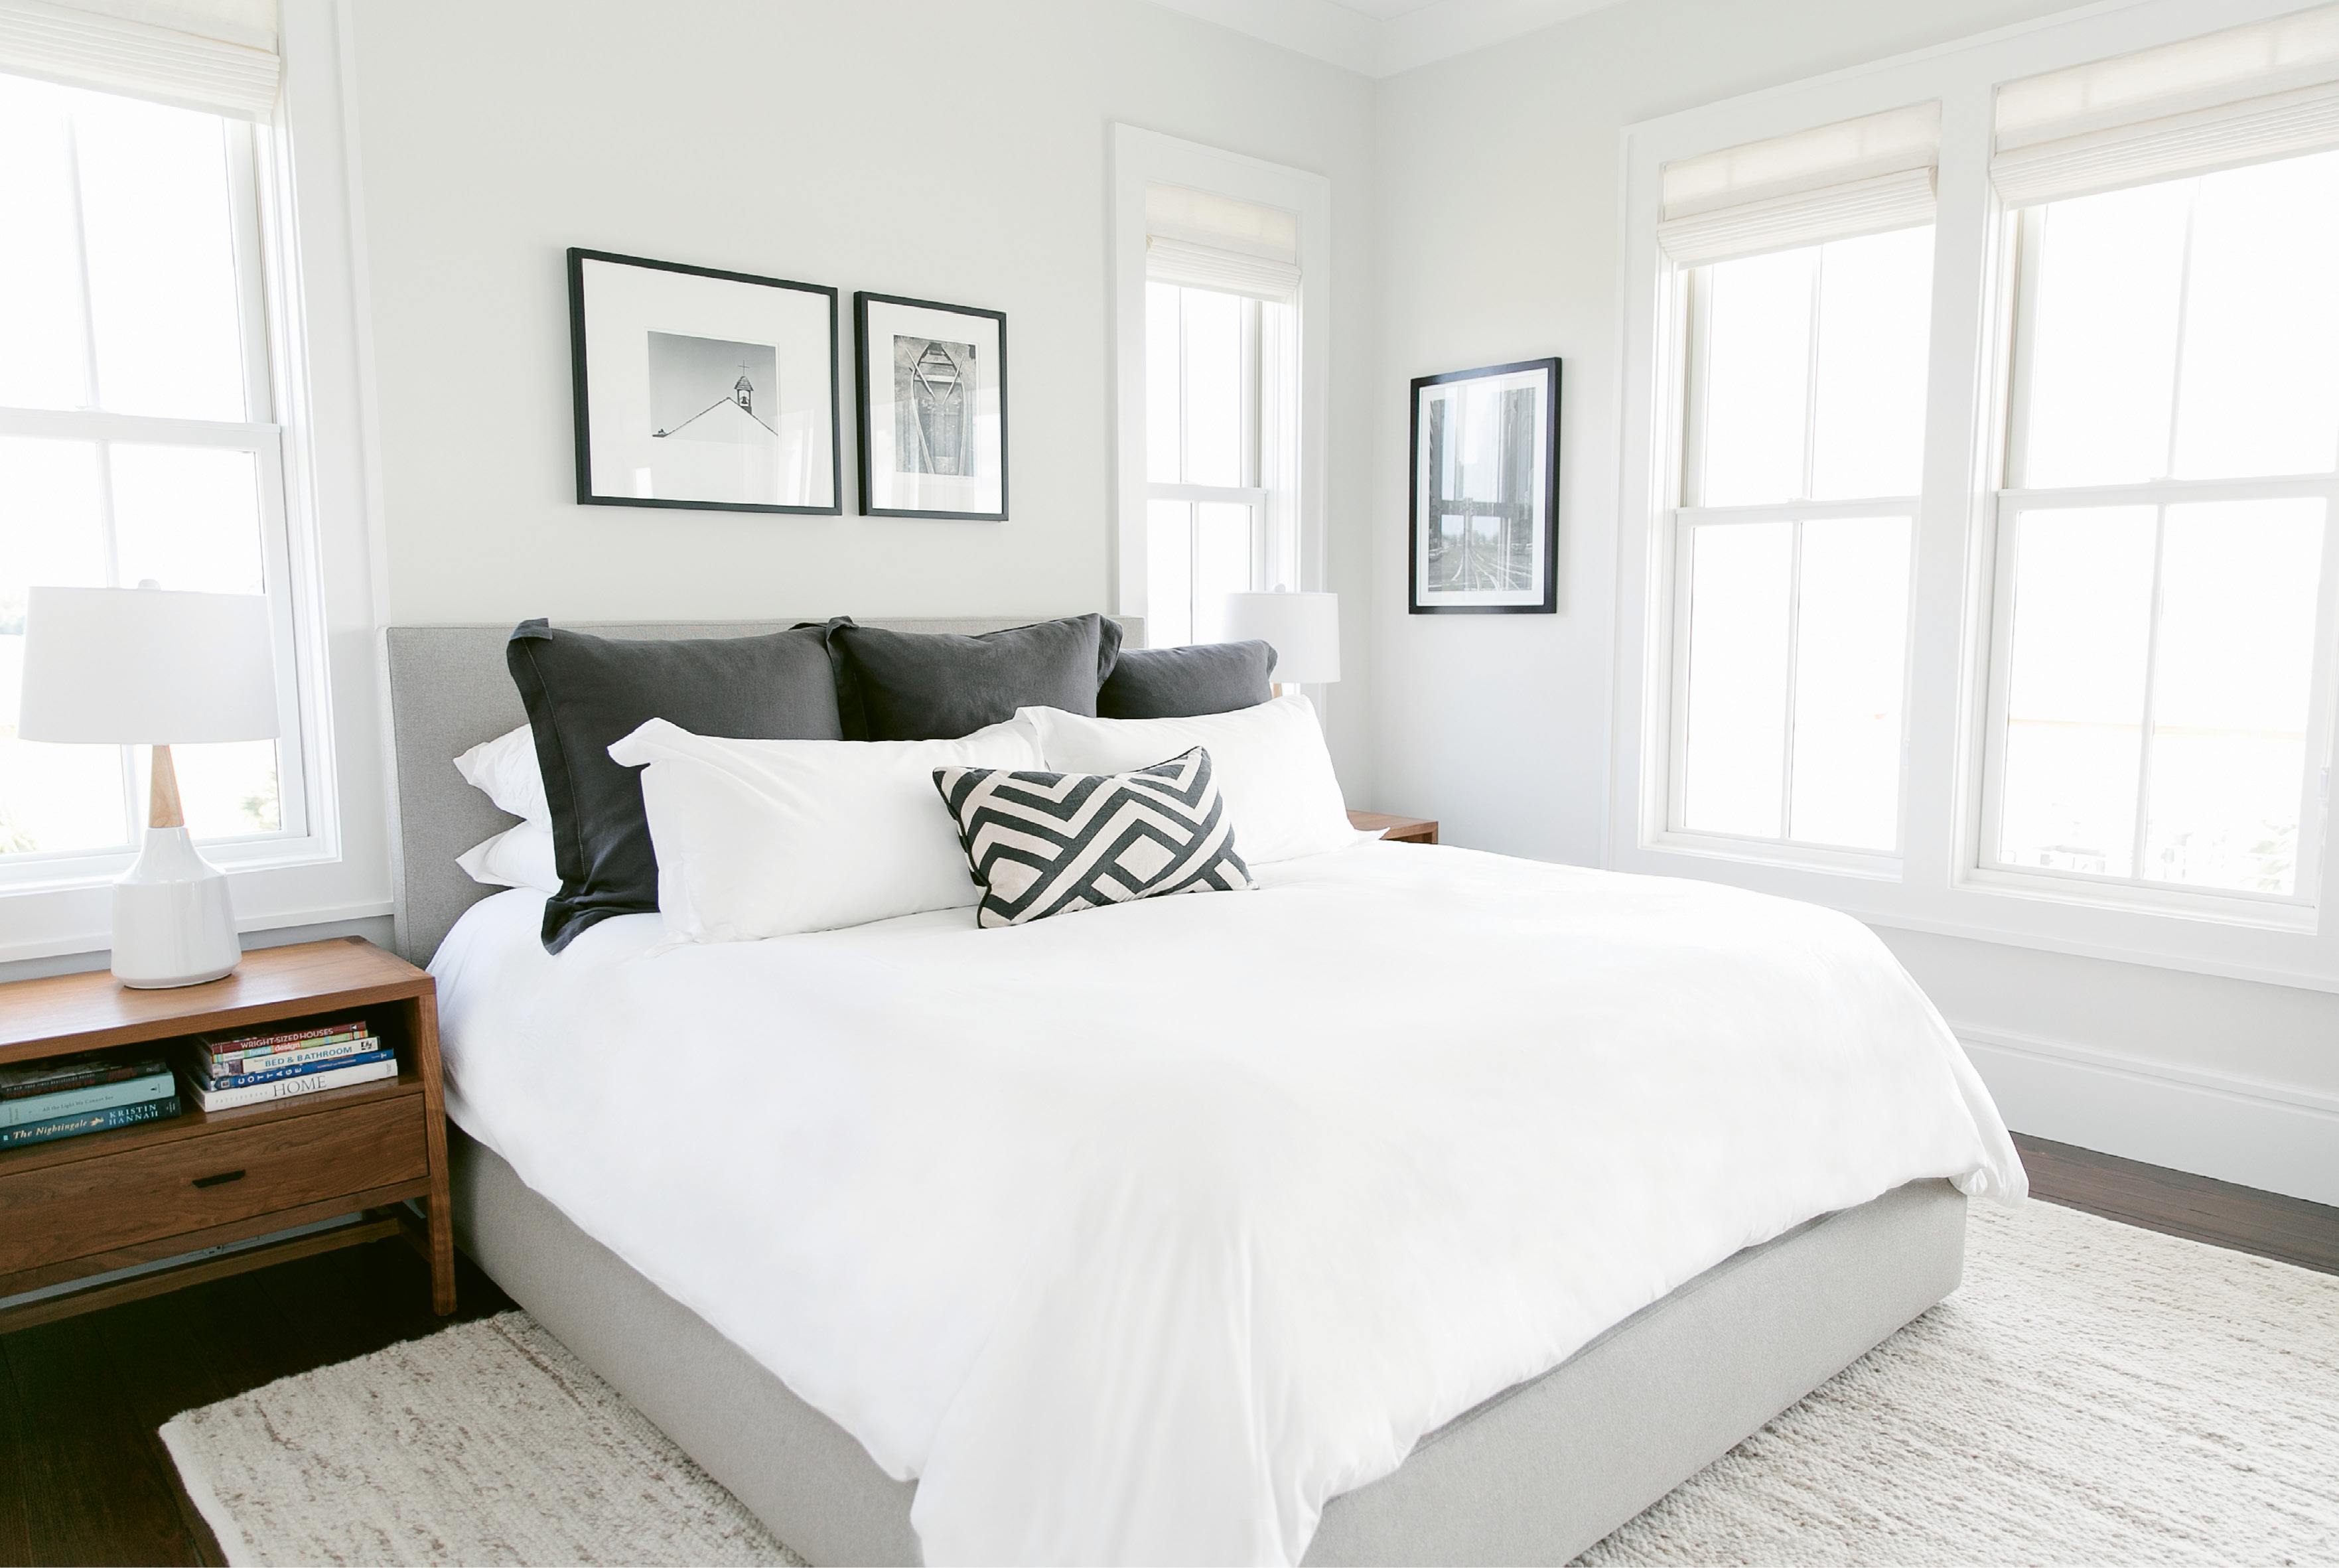 The black-and-white master suite is a soothing retreat from the bright colors and busy patterns Melissa often sees as an interior designer.